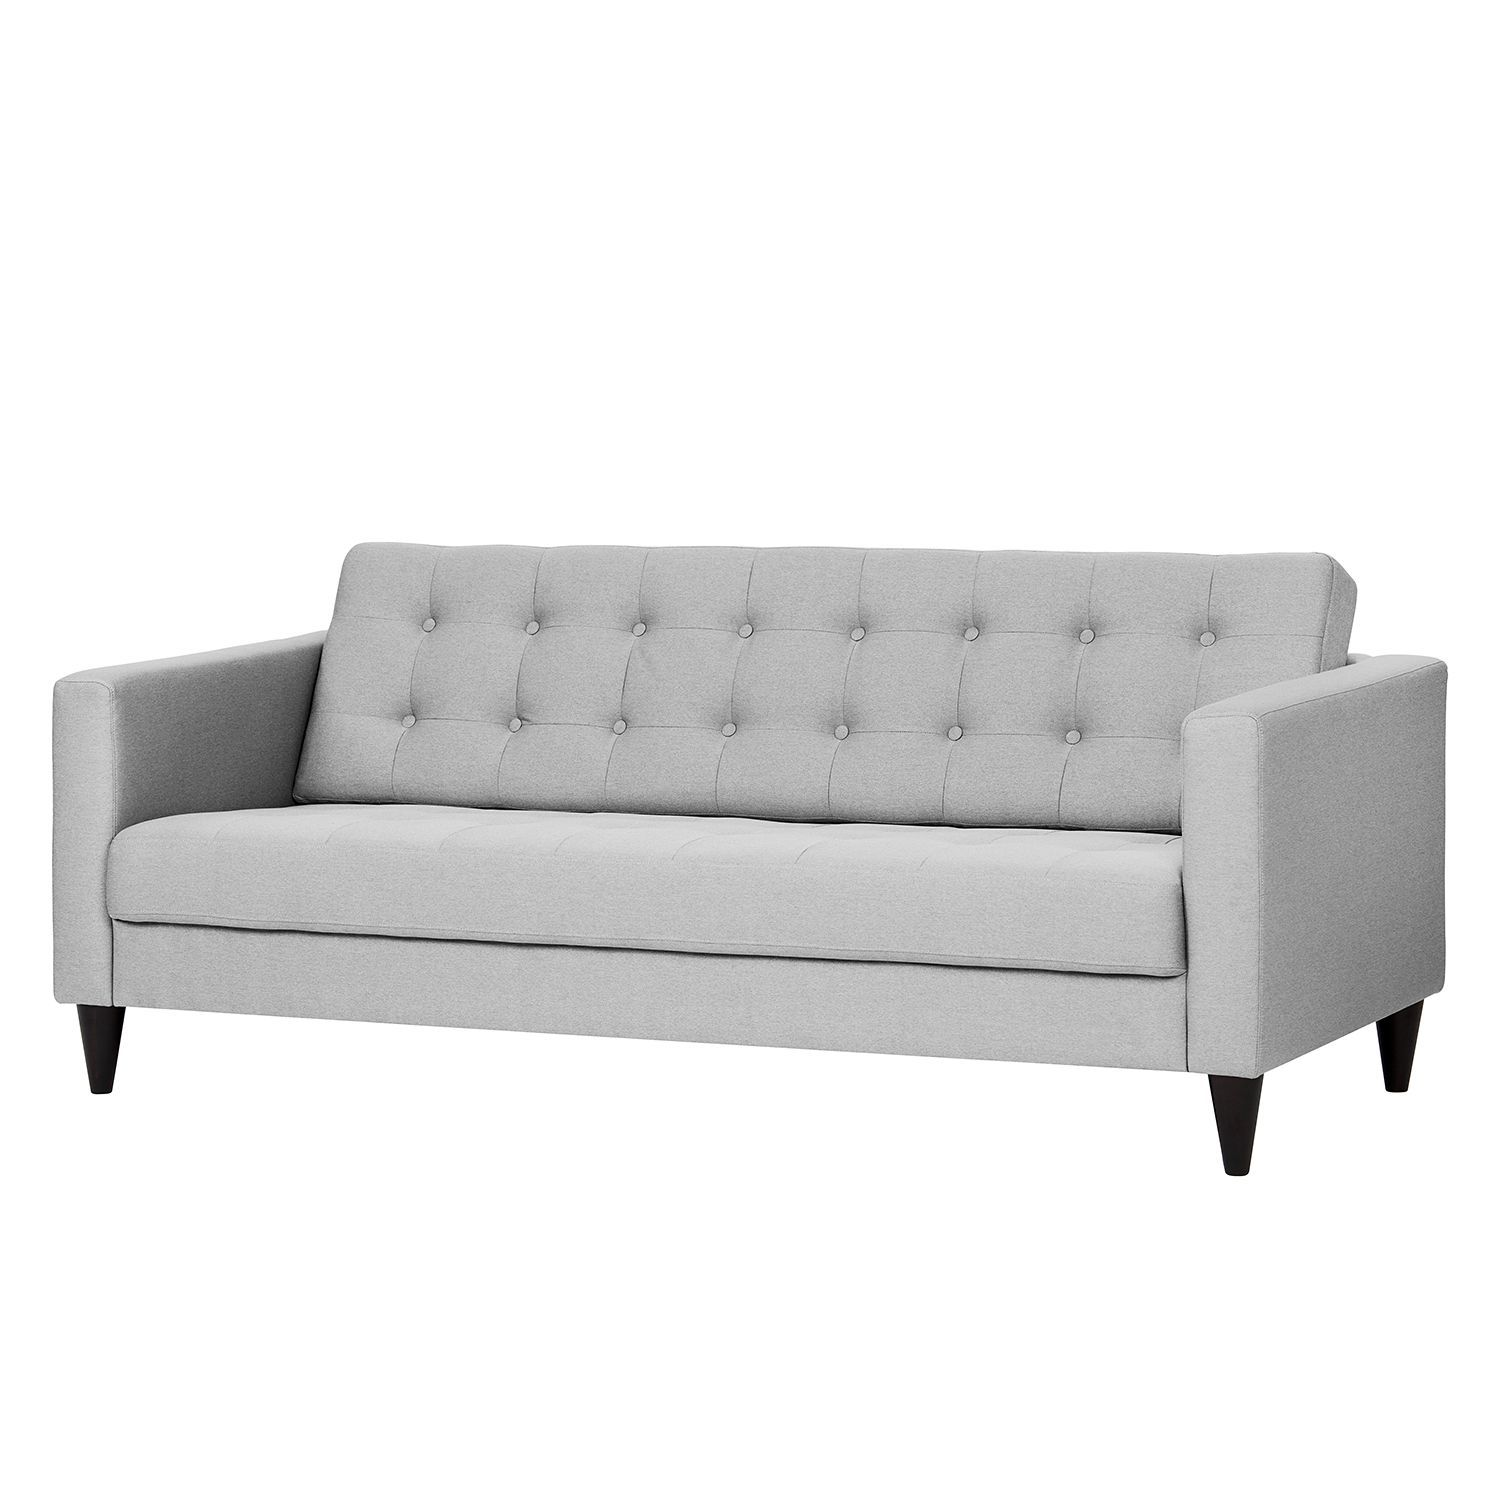 Sofa Wallace 3 Sitzer Webstoff Sofa Sofa Mit Relaxfunktion Sofas